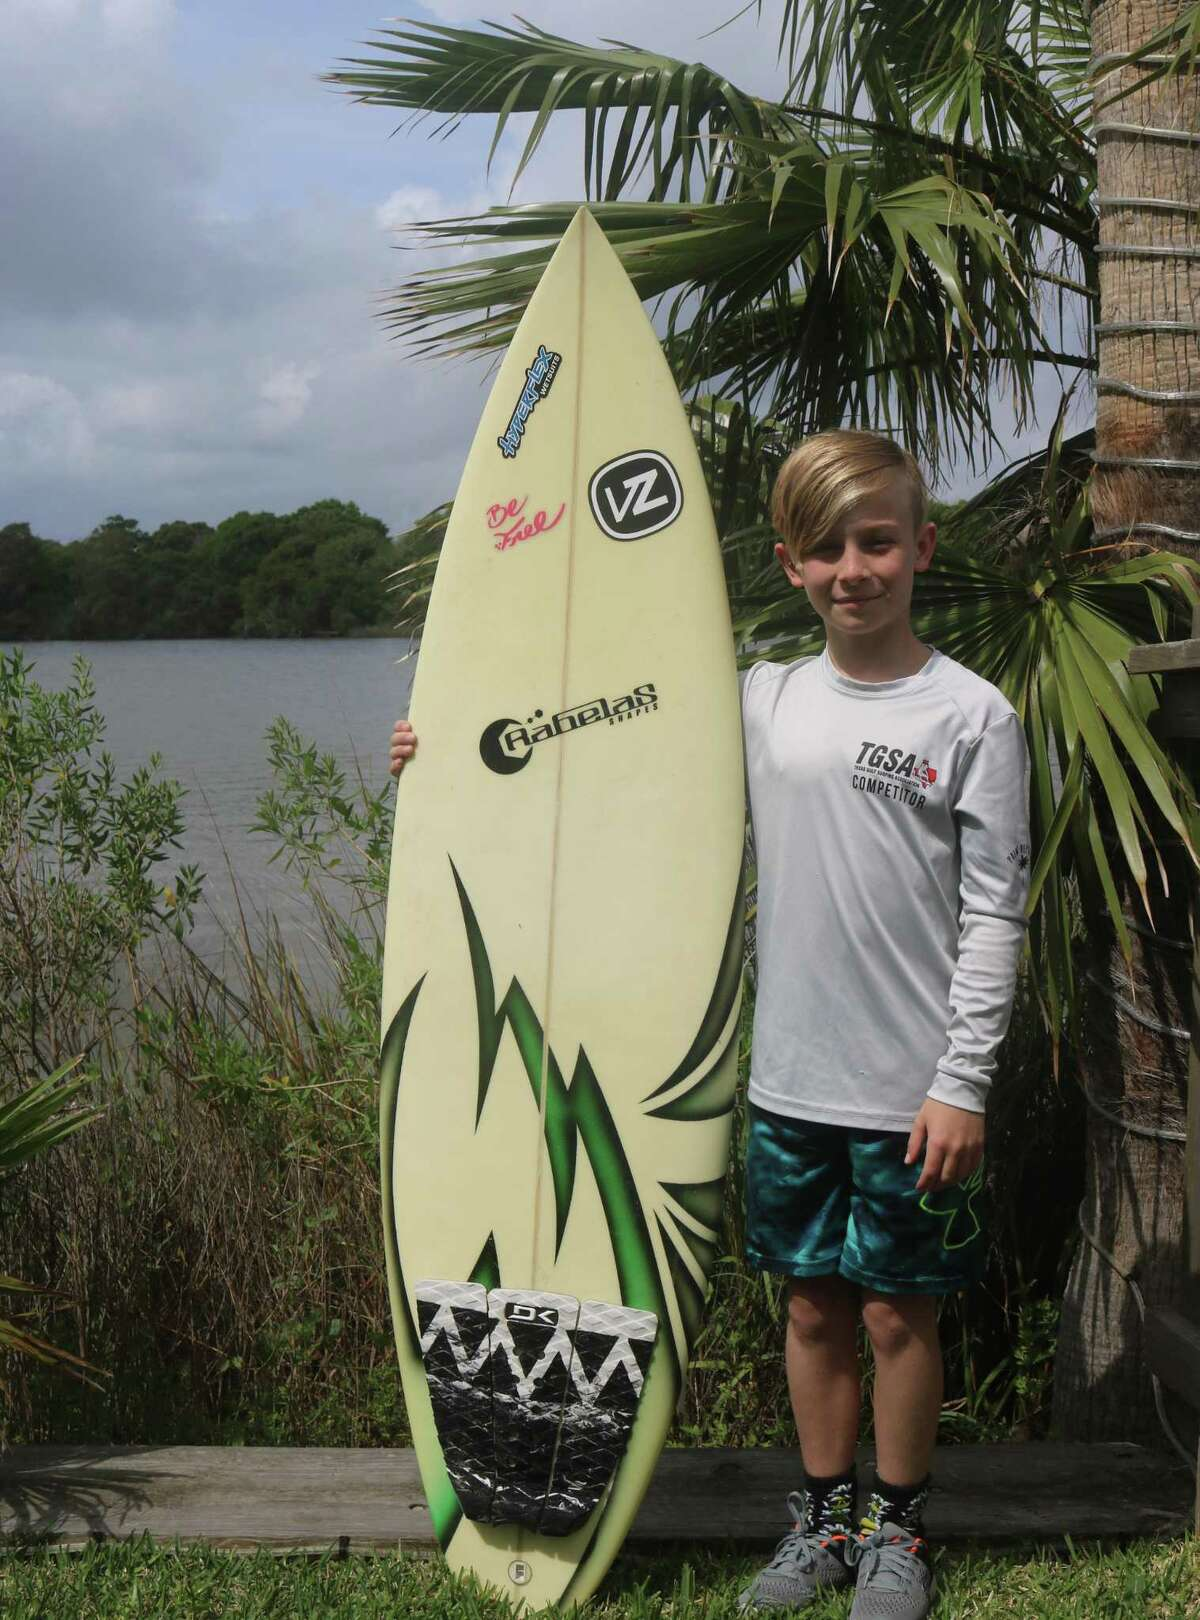 Marshall Kendrick Middle School student Caden Shelton is the current state surfing champion in the Menehuene Division (9-12 year-olds). A member of the Texas Gulf Surf Association All-Star Team, the 11-year-old hasn't met a wave he and his surfboard can't conquer.